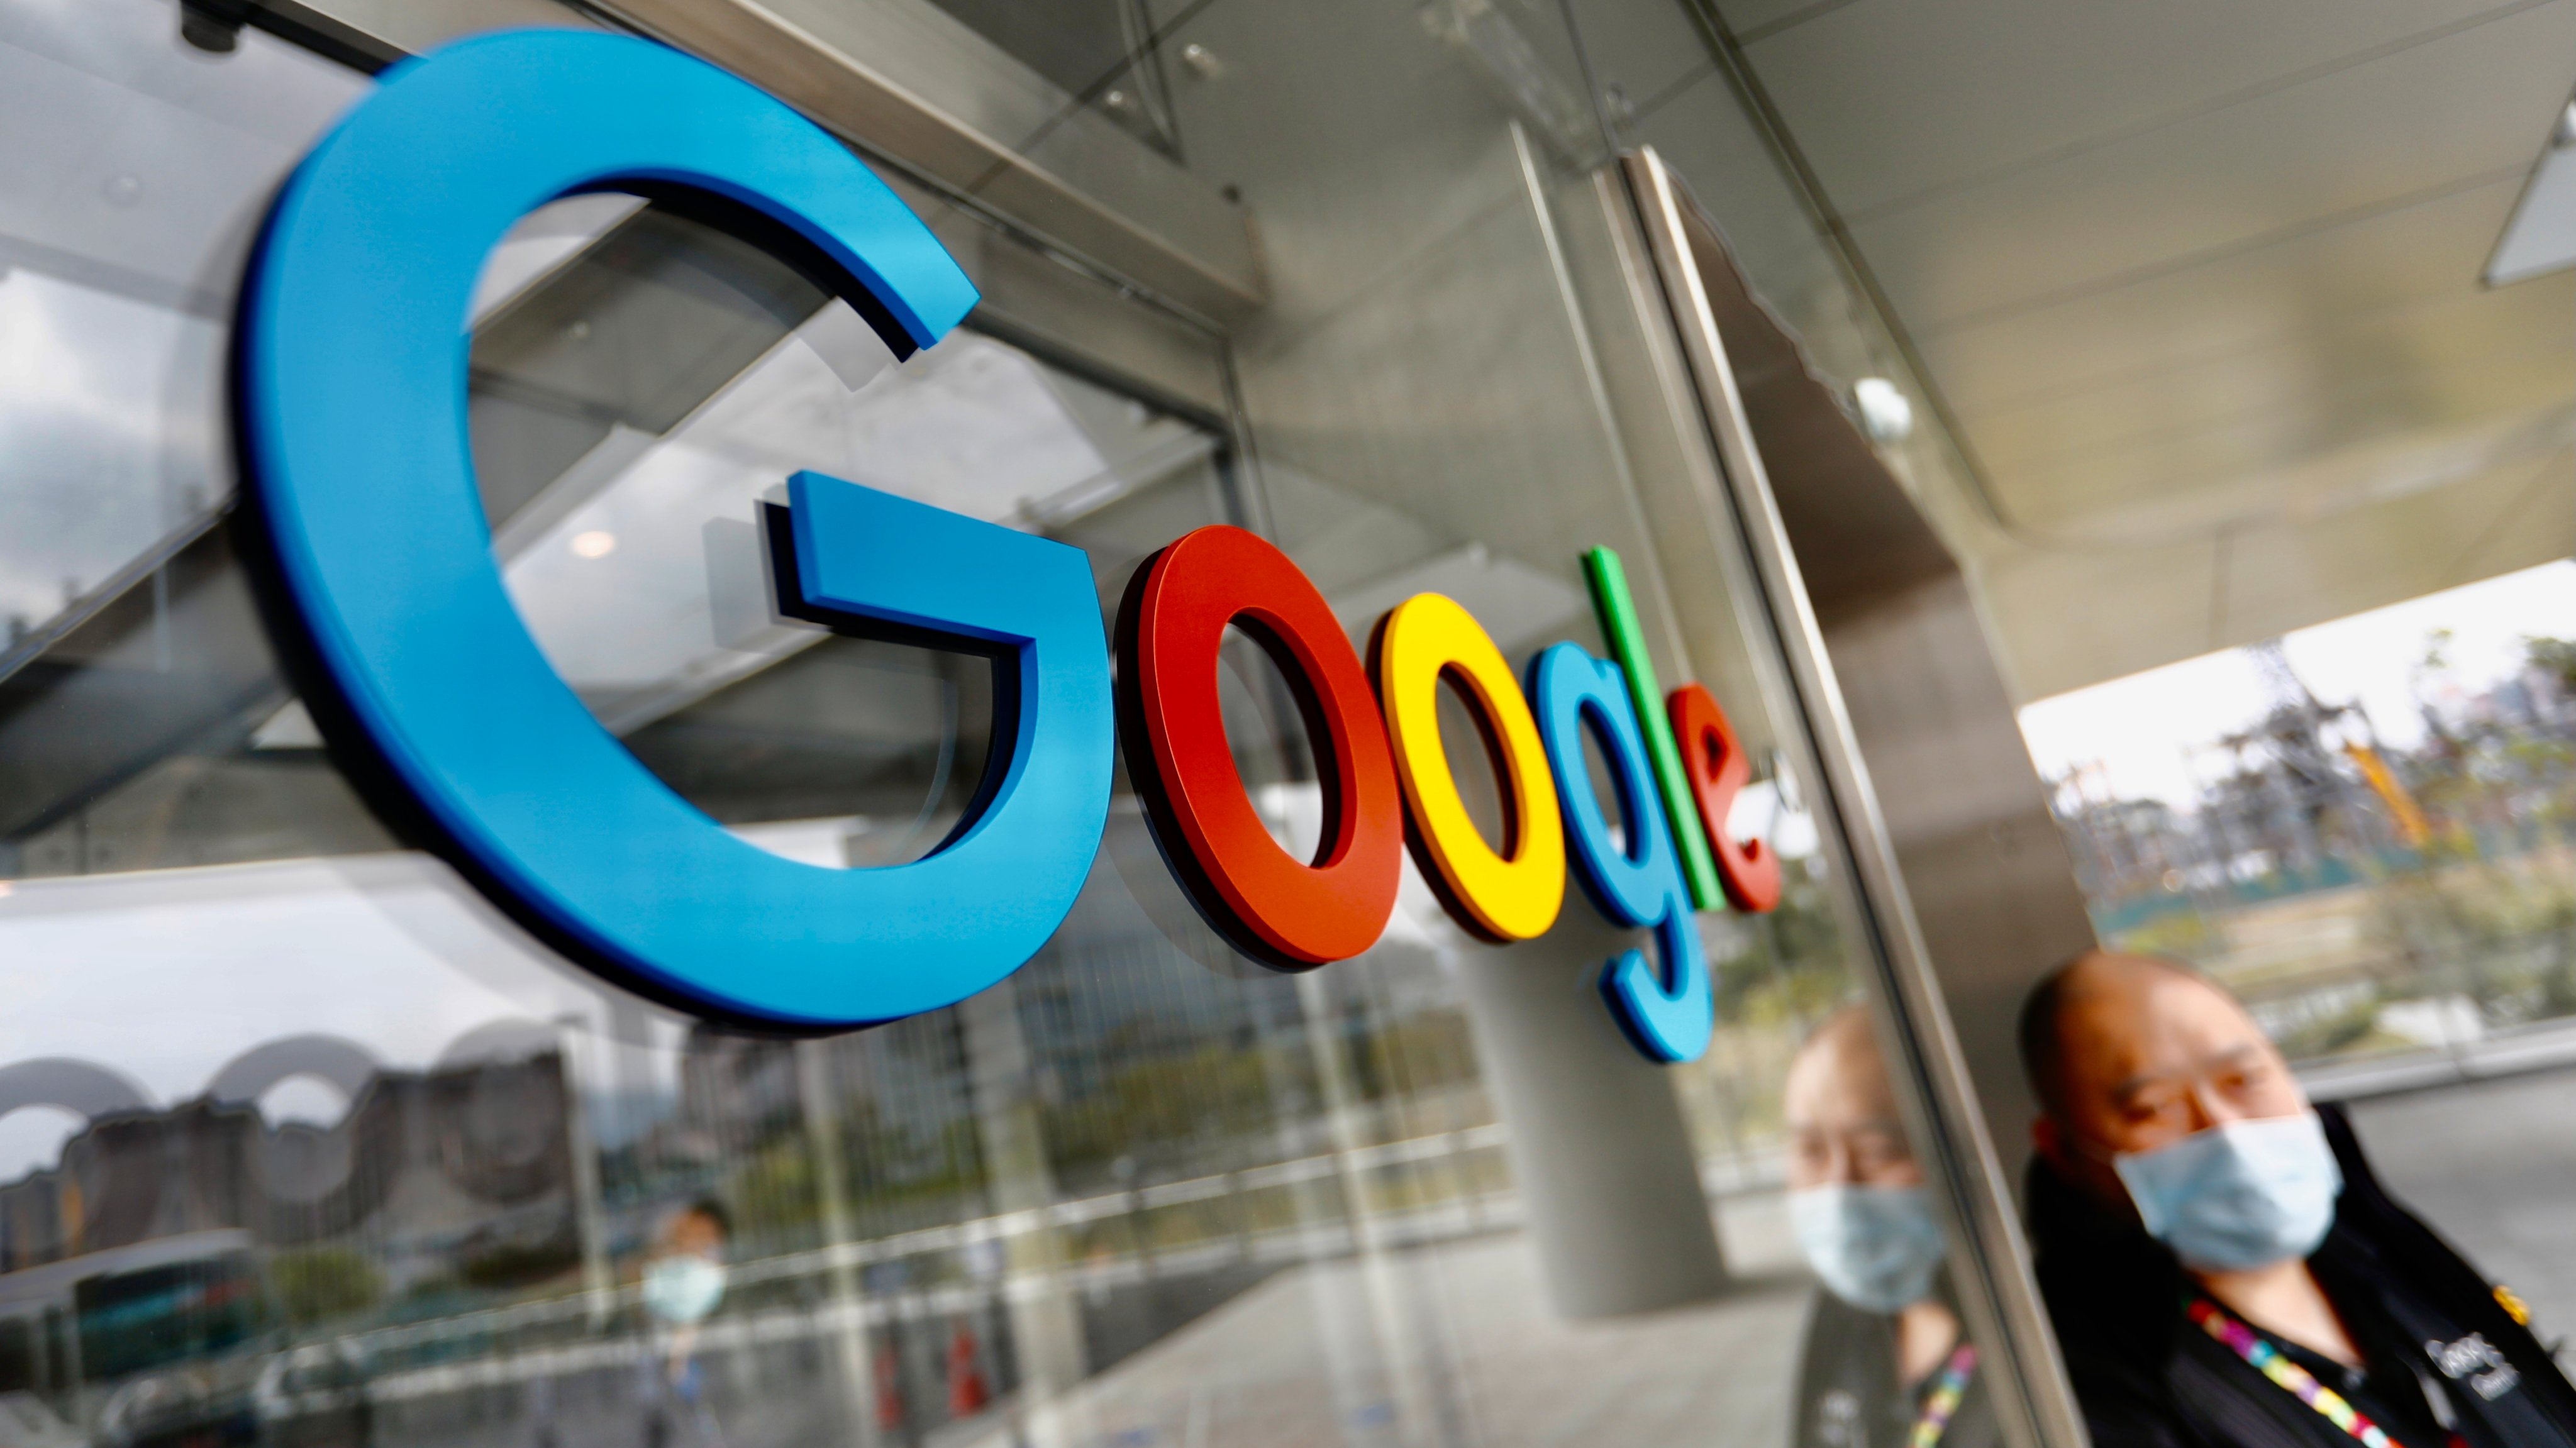 Hardware development center in Taiwan Google's second-largest in world